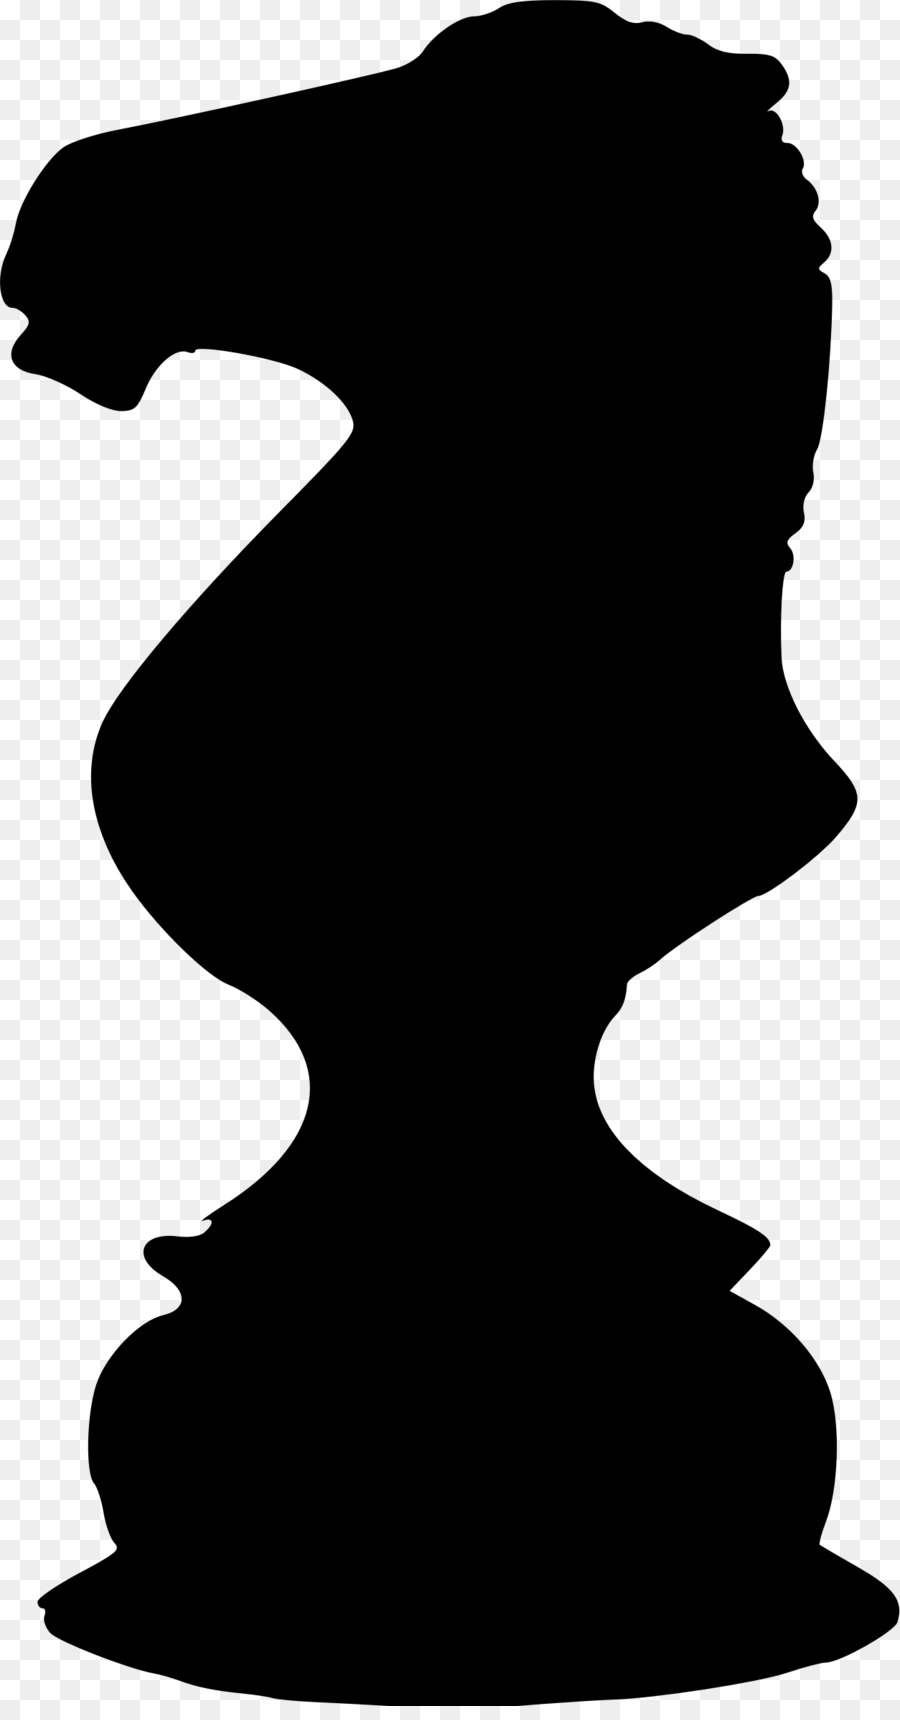 900x1720 Royalty Free Knight Chess Piece 370631 Vector Clip Art Image